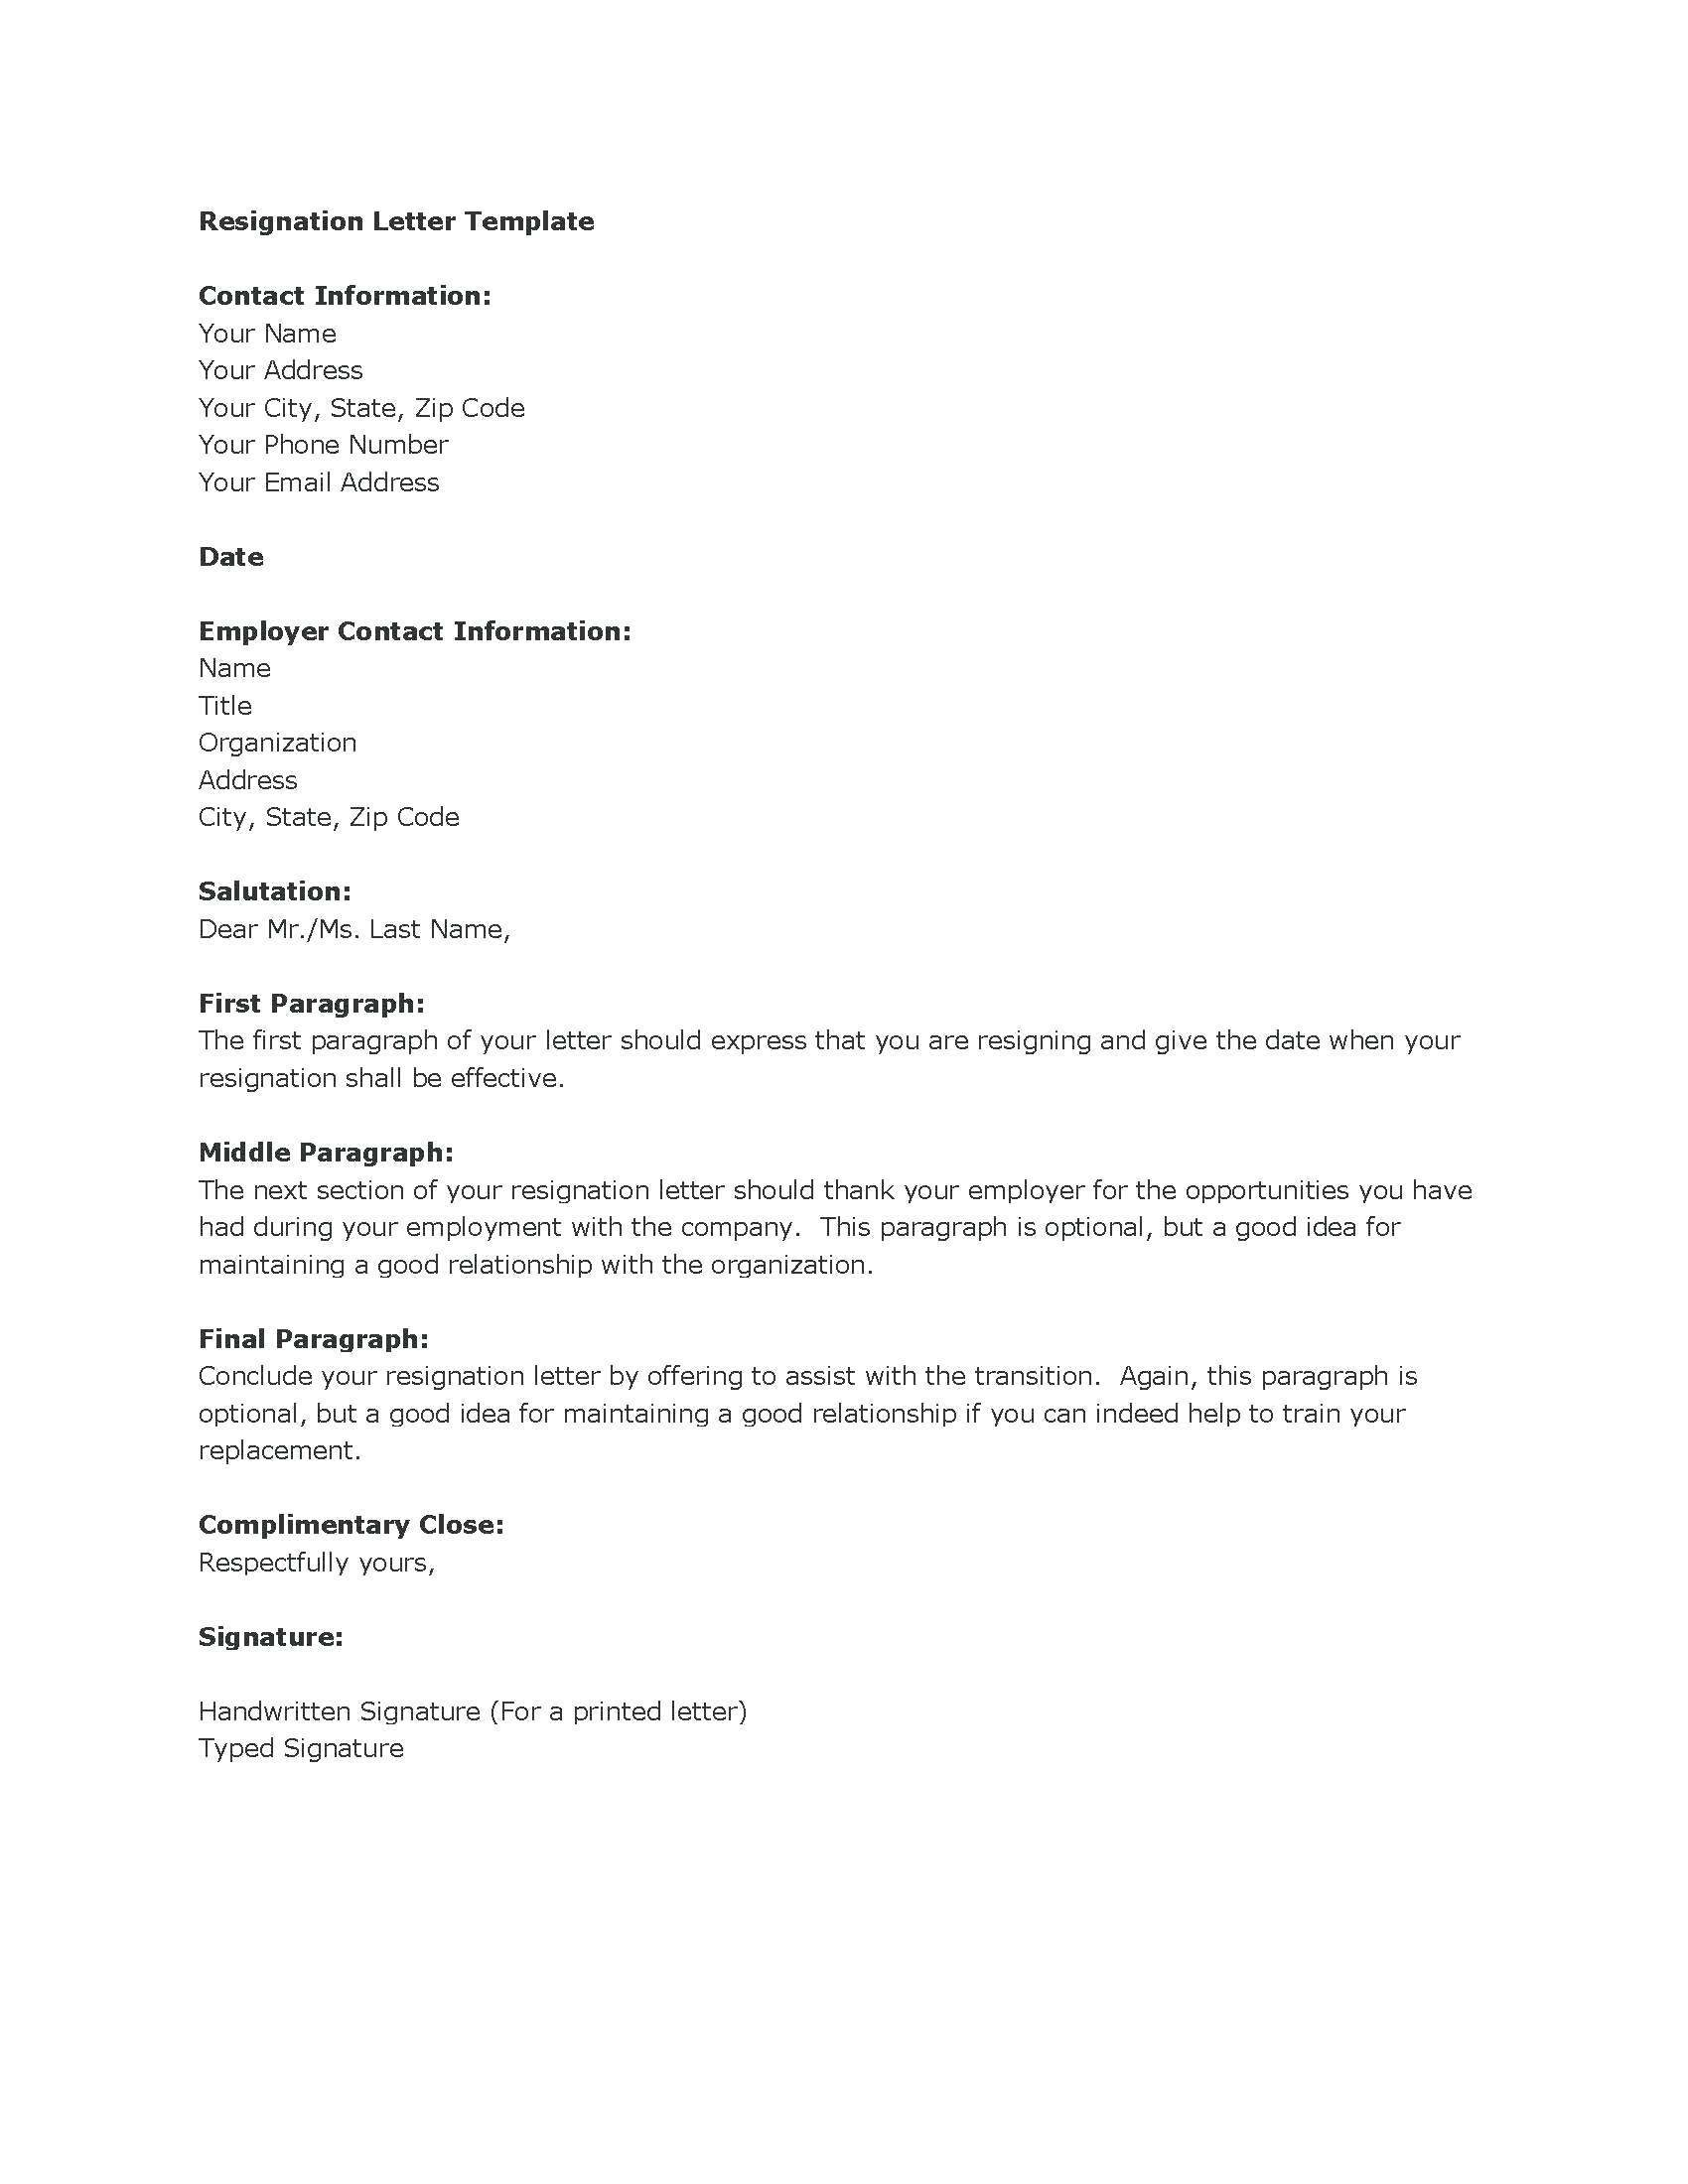 Microsoft Word Resignation Letter Template - Resignation Letter In Ms Word Sarahepps